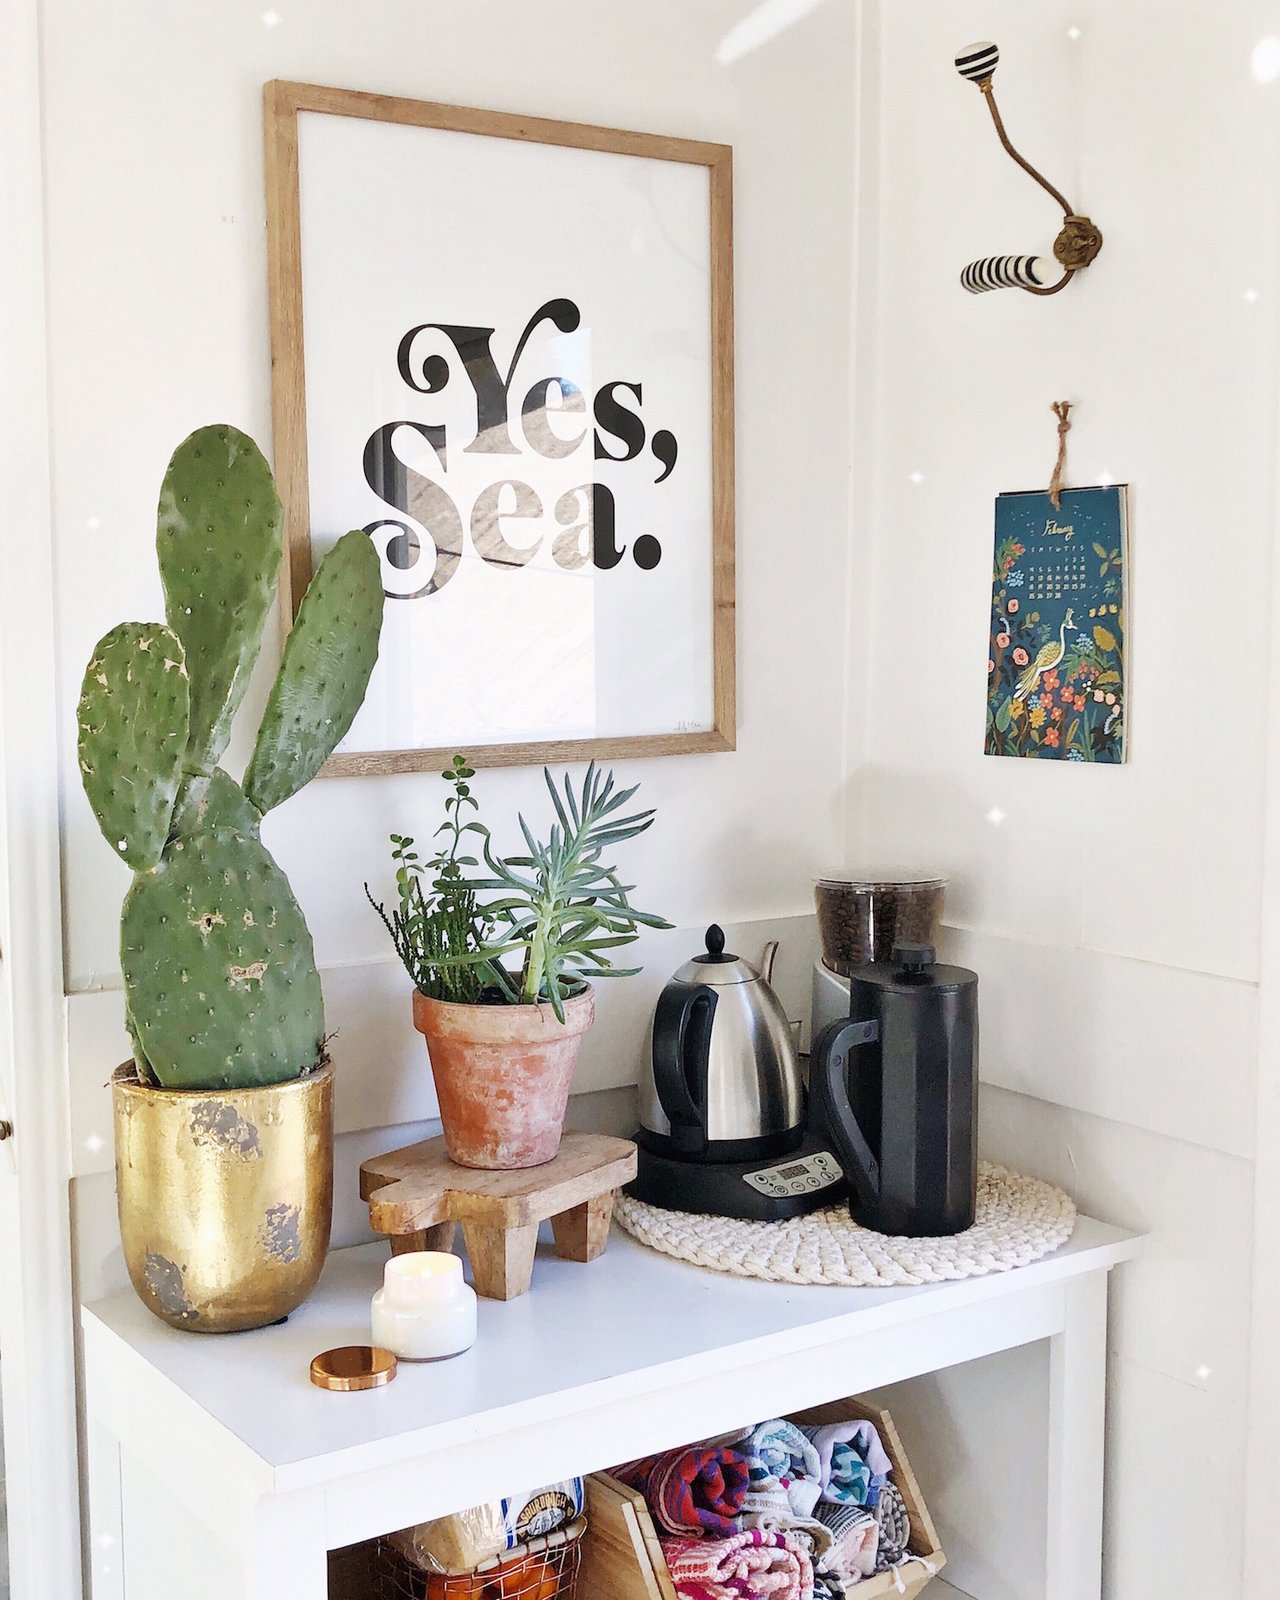 Kitchen Pops of greenery and art imbue warmth into the tiny home.   Photo 5 of 11 in A Couple Spend $3K to Turn an Old RV Into a Cozy Home For Five